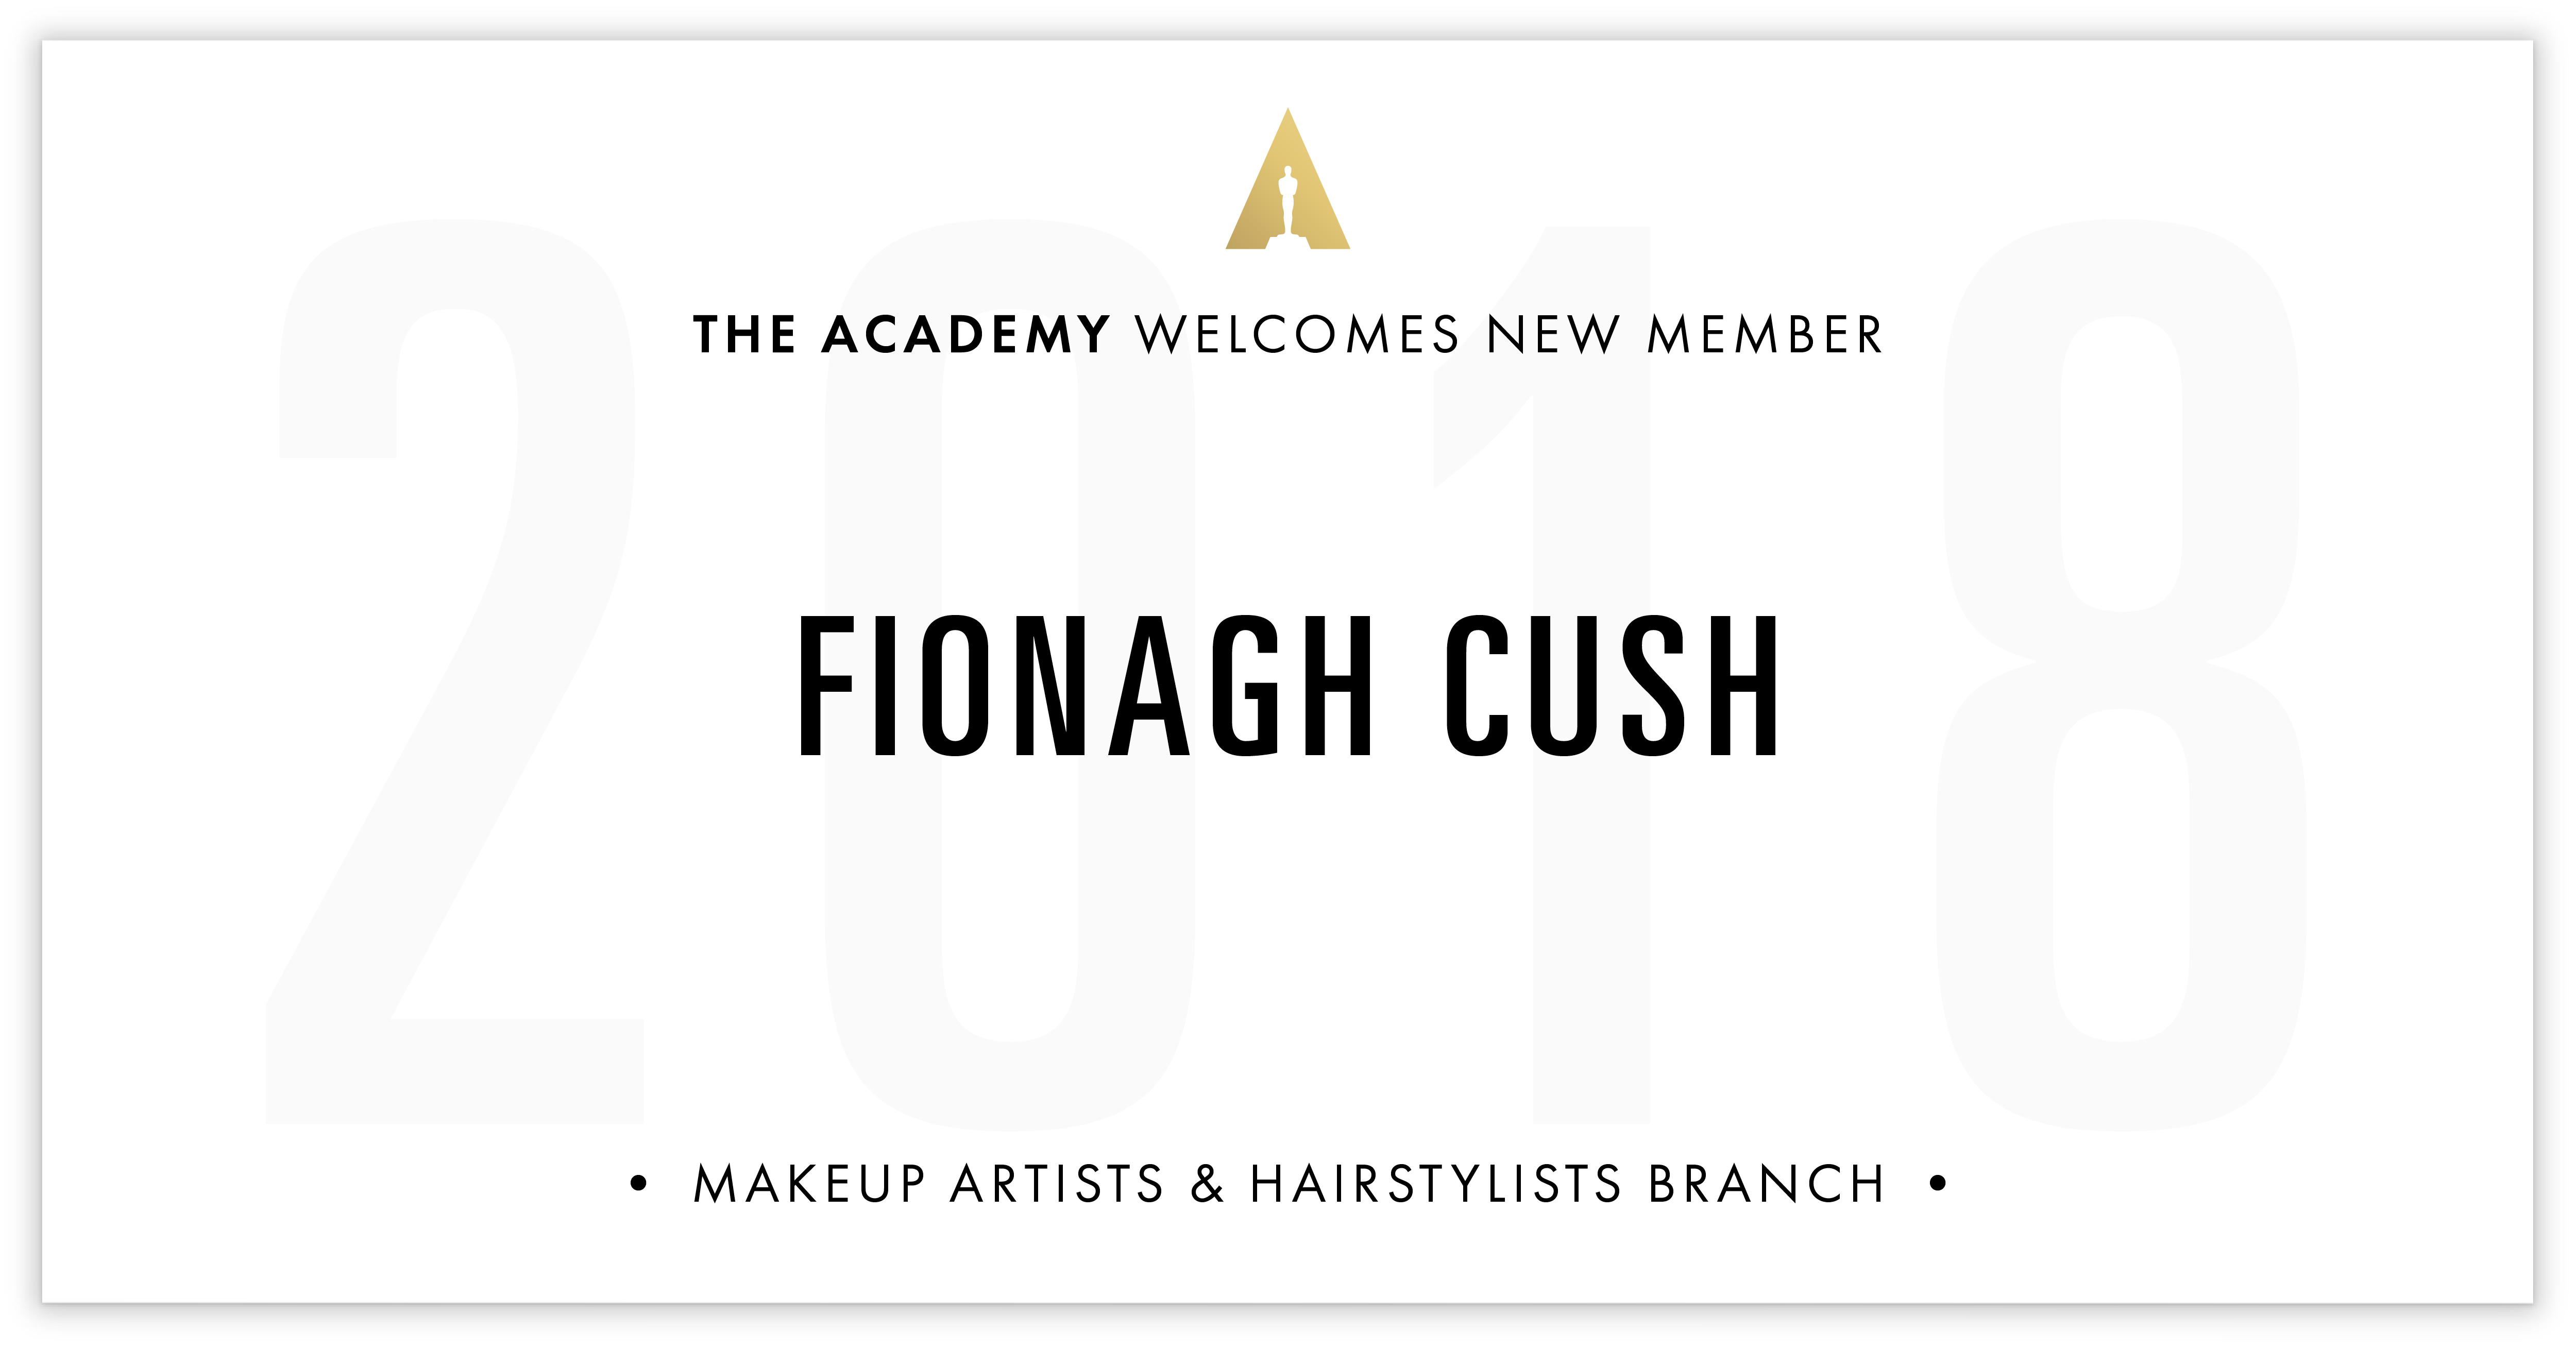 Fionagh Cush is invited!